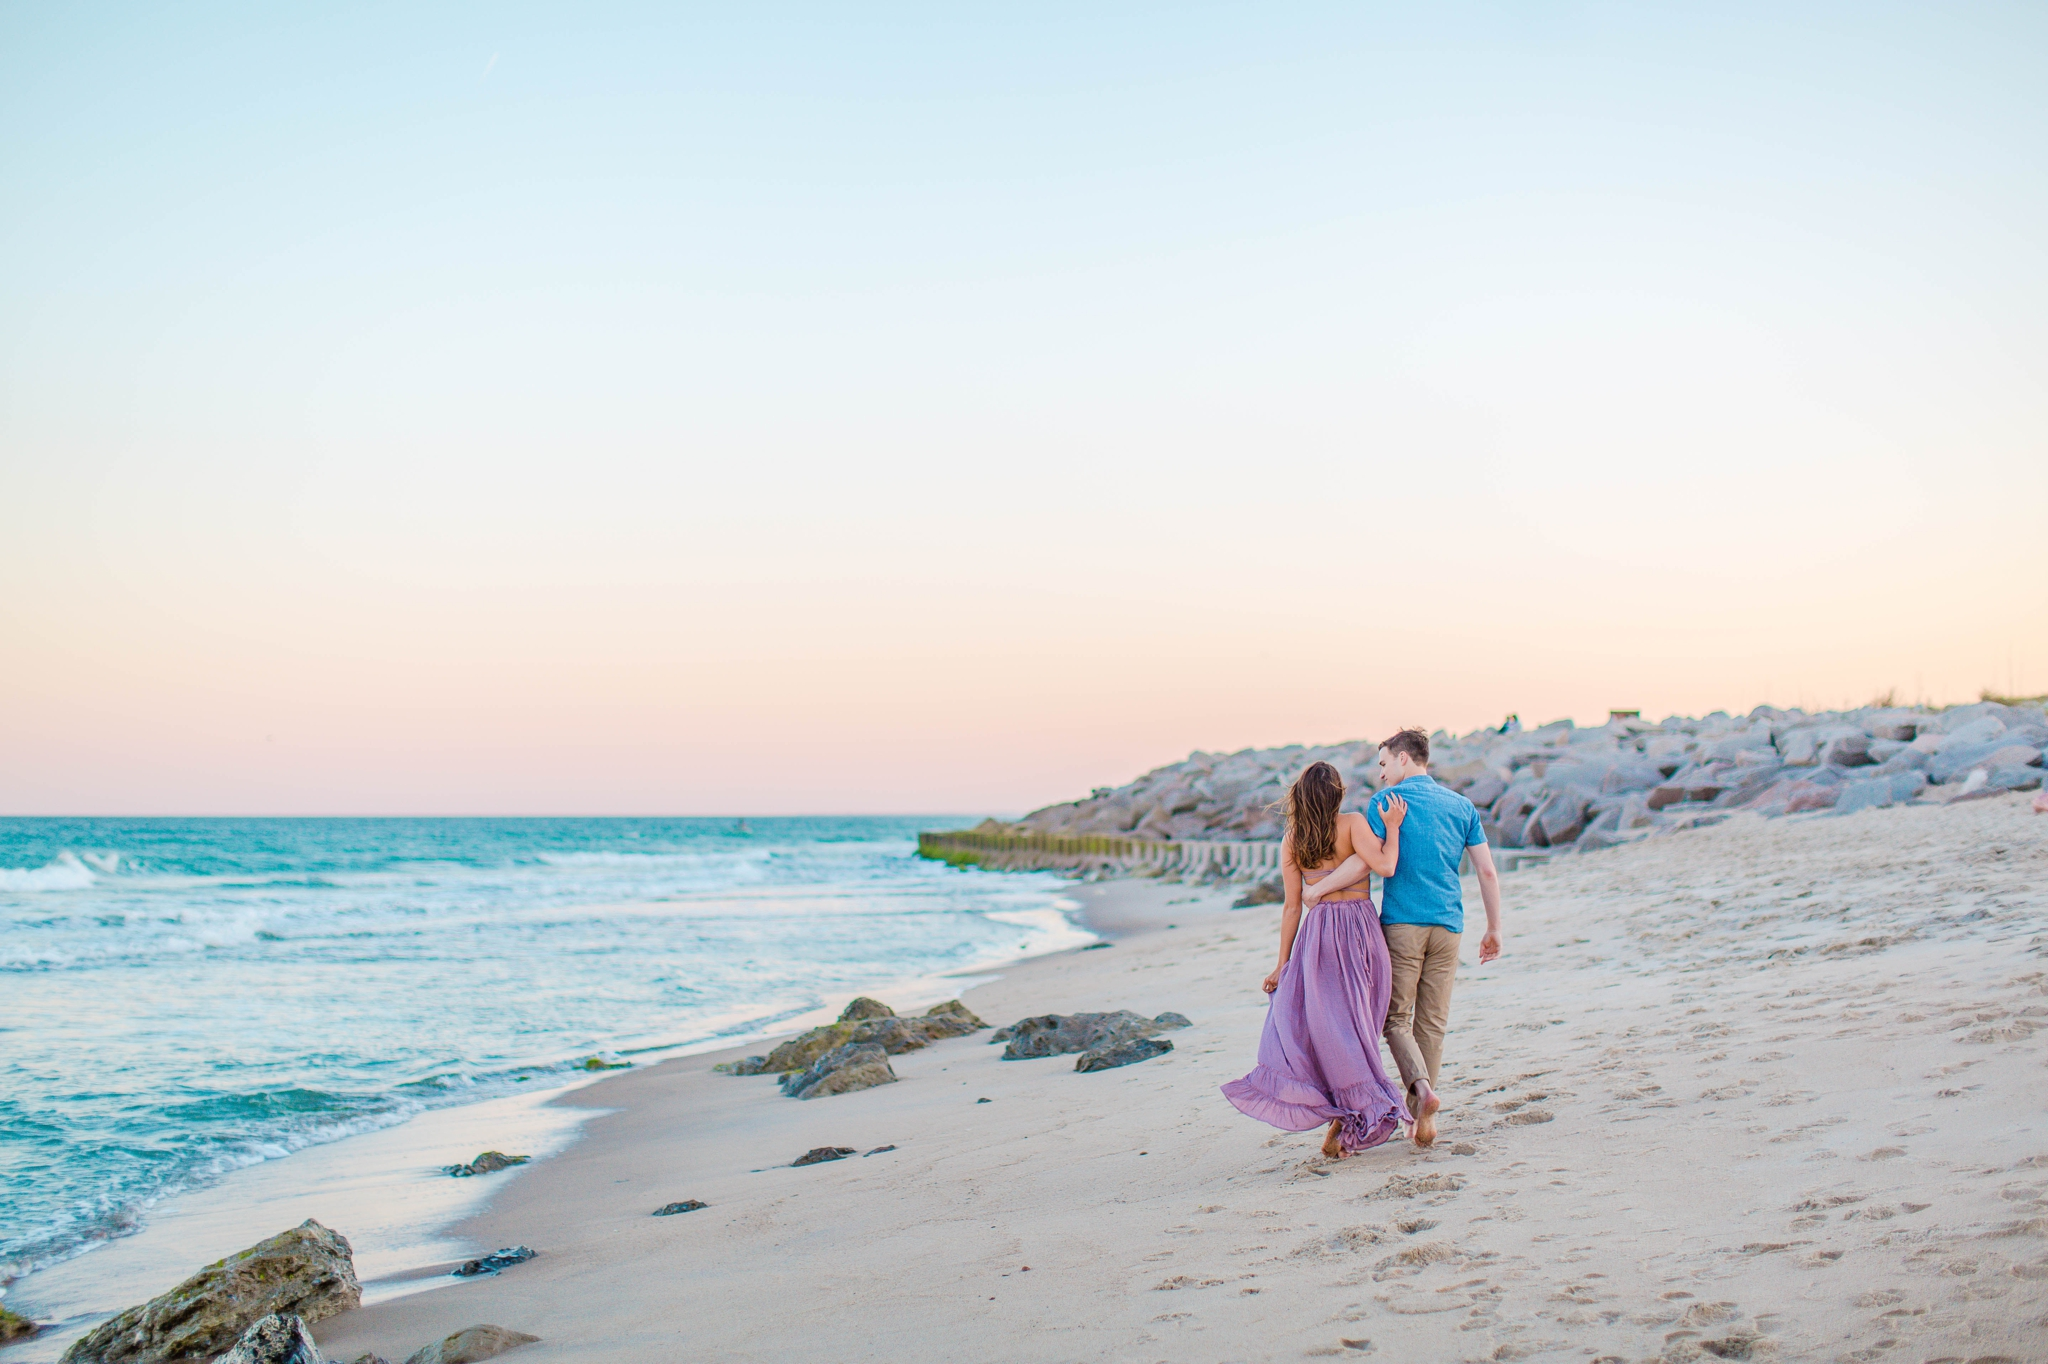 couple on the beach walking and laughing - - Woman is in a flowy pastel maxi dress - candid and unposed golden light session - beach engagement photographer in honolulu, oahu, hawaii - johanna dye photography